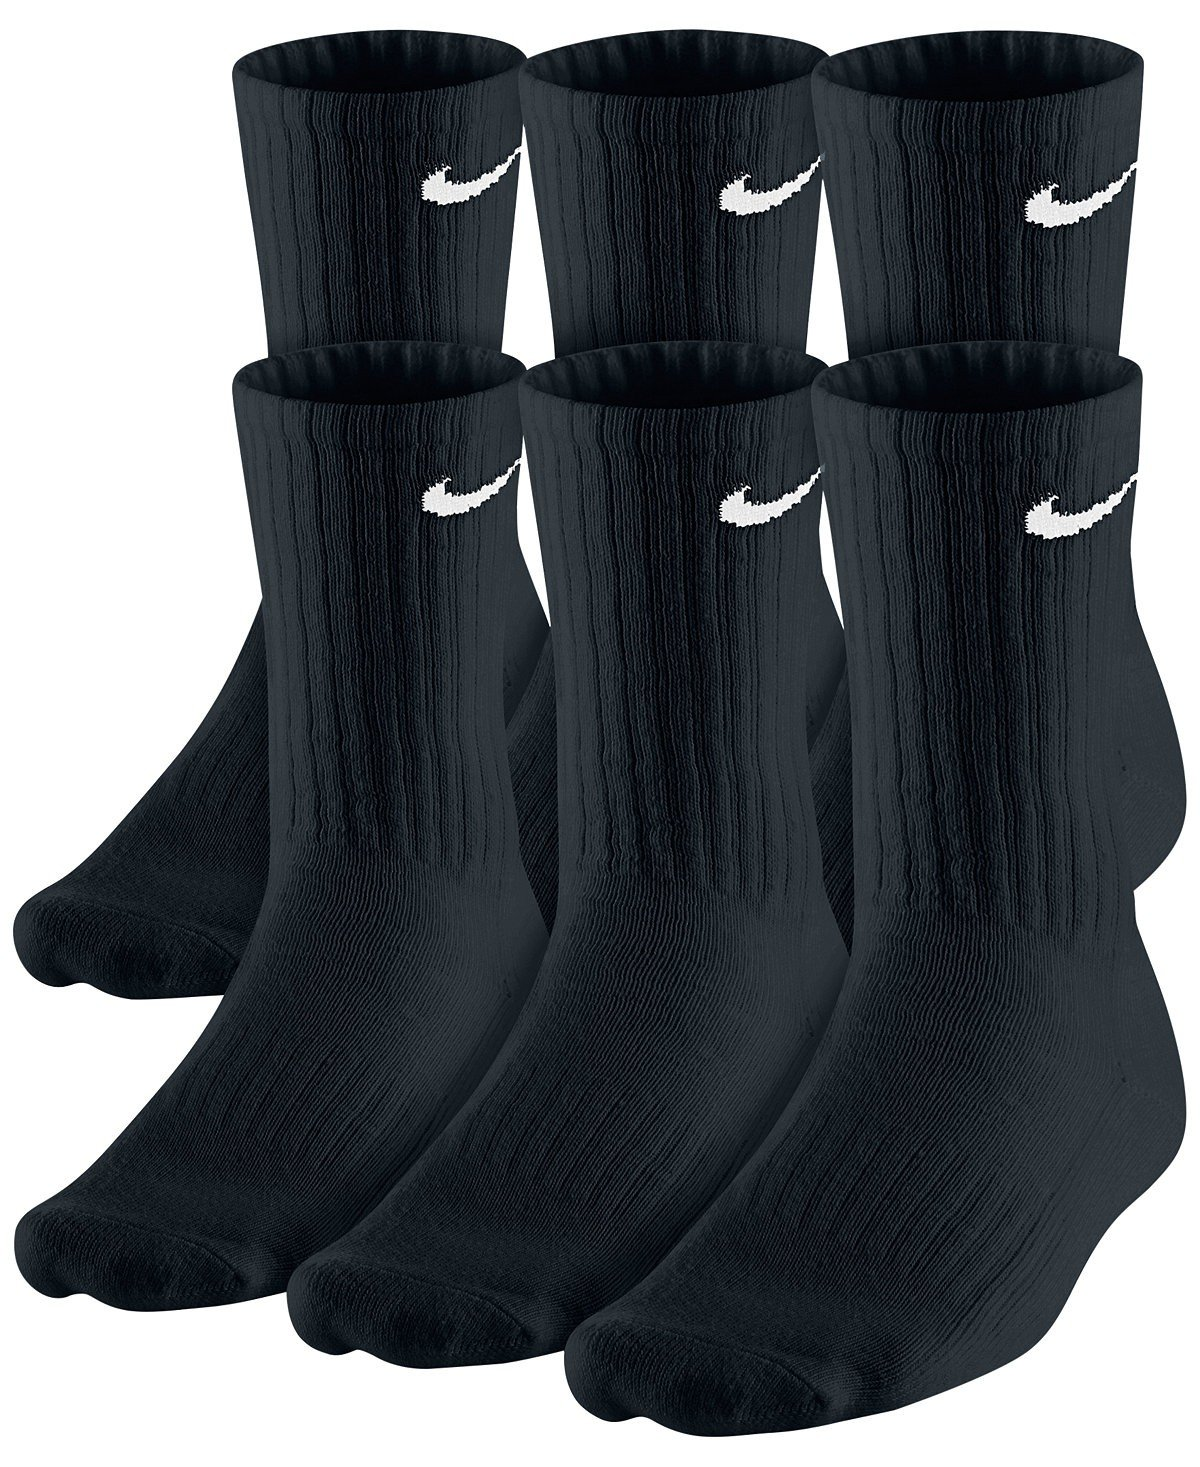 NIKE Dri-Fit Classic Cushioned Crew Socks 6 PAIR Black with White Swoosh Logo) LARGE 8-12 for cheap